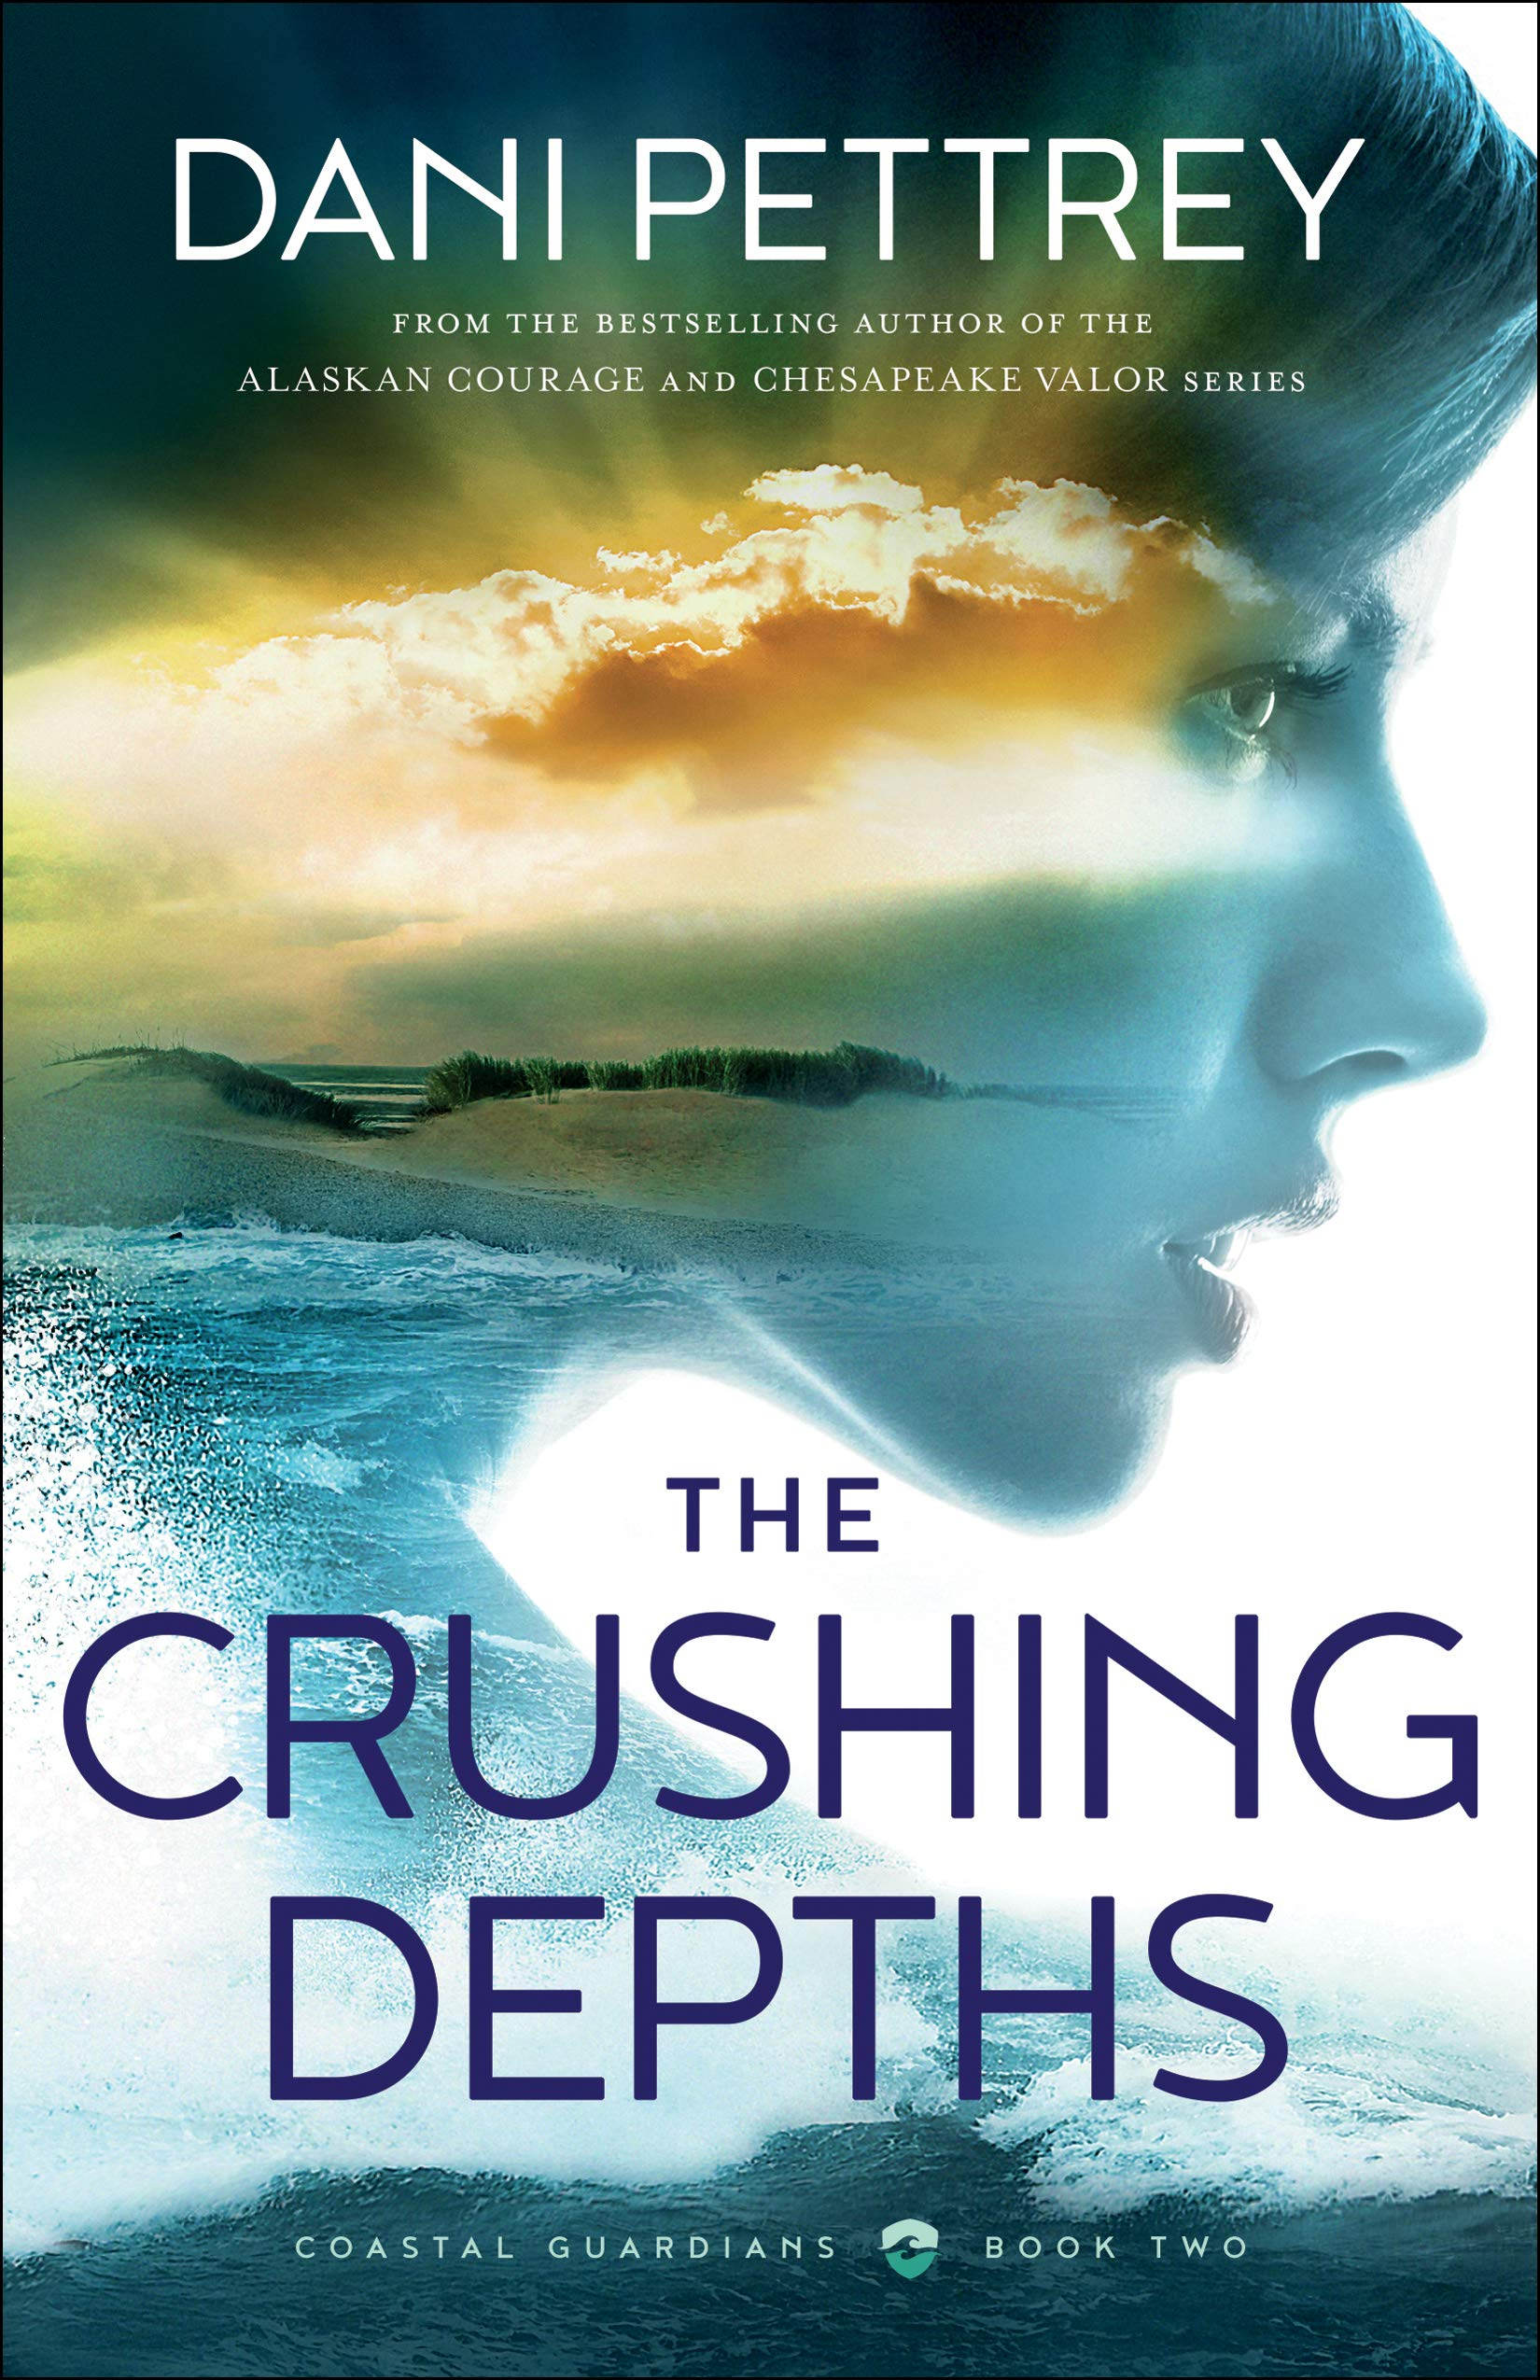 The Crushing Depths: Pettrey, Dani: 9780764230851: Books - Amazon.ca